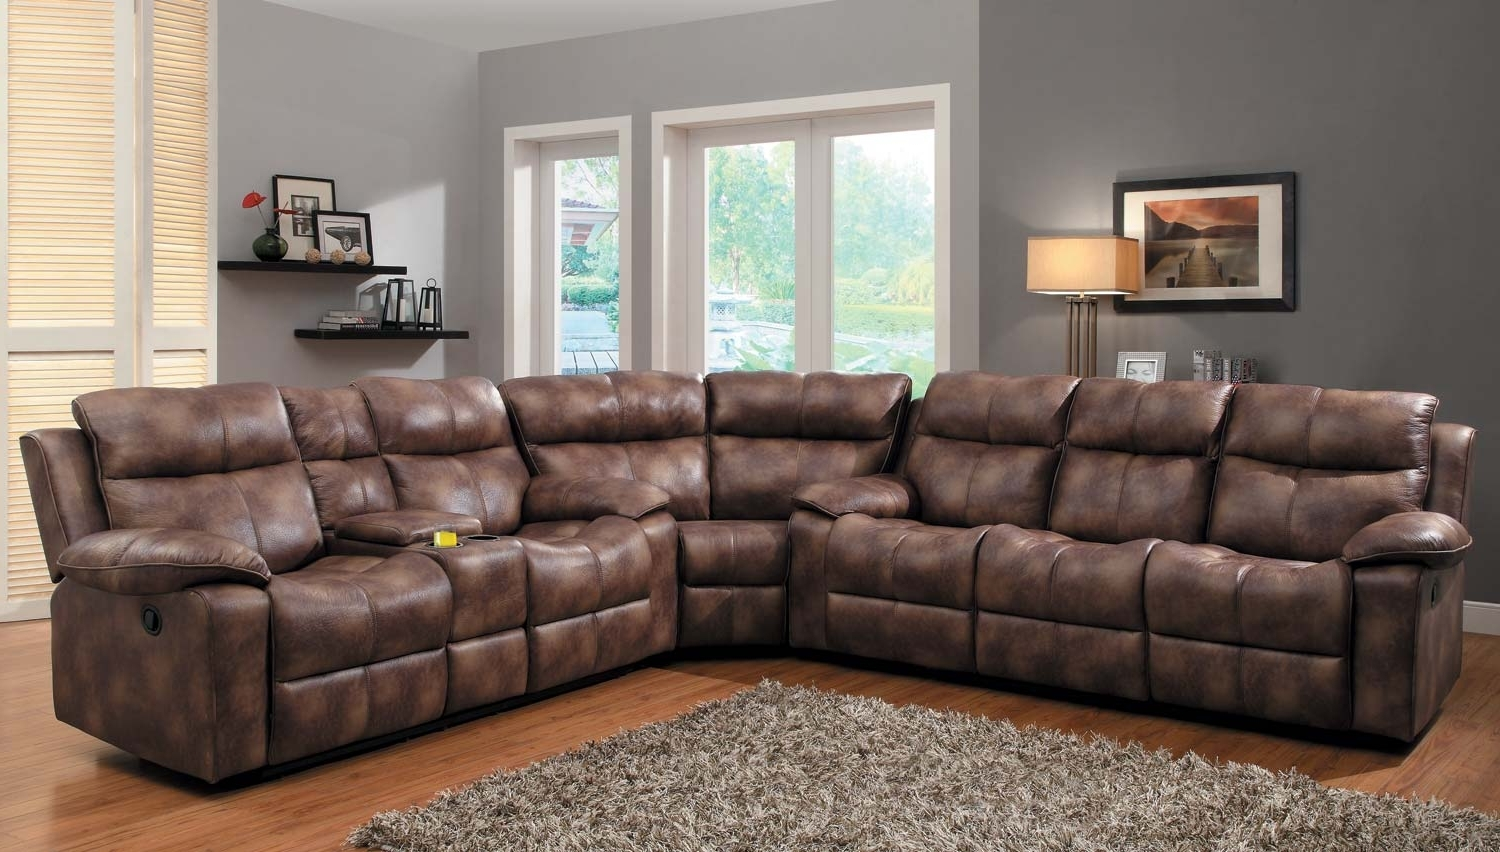 Current Curved Sectional Sofas With Recliner Within Furniture: Inspiring Reclining Sectional For Living Room Furniture (View 14 of 20)